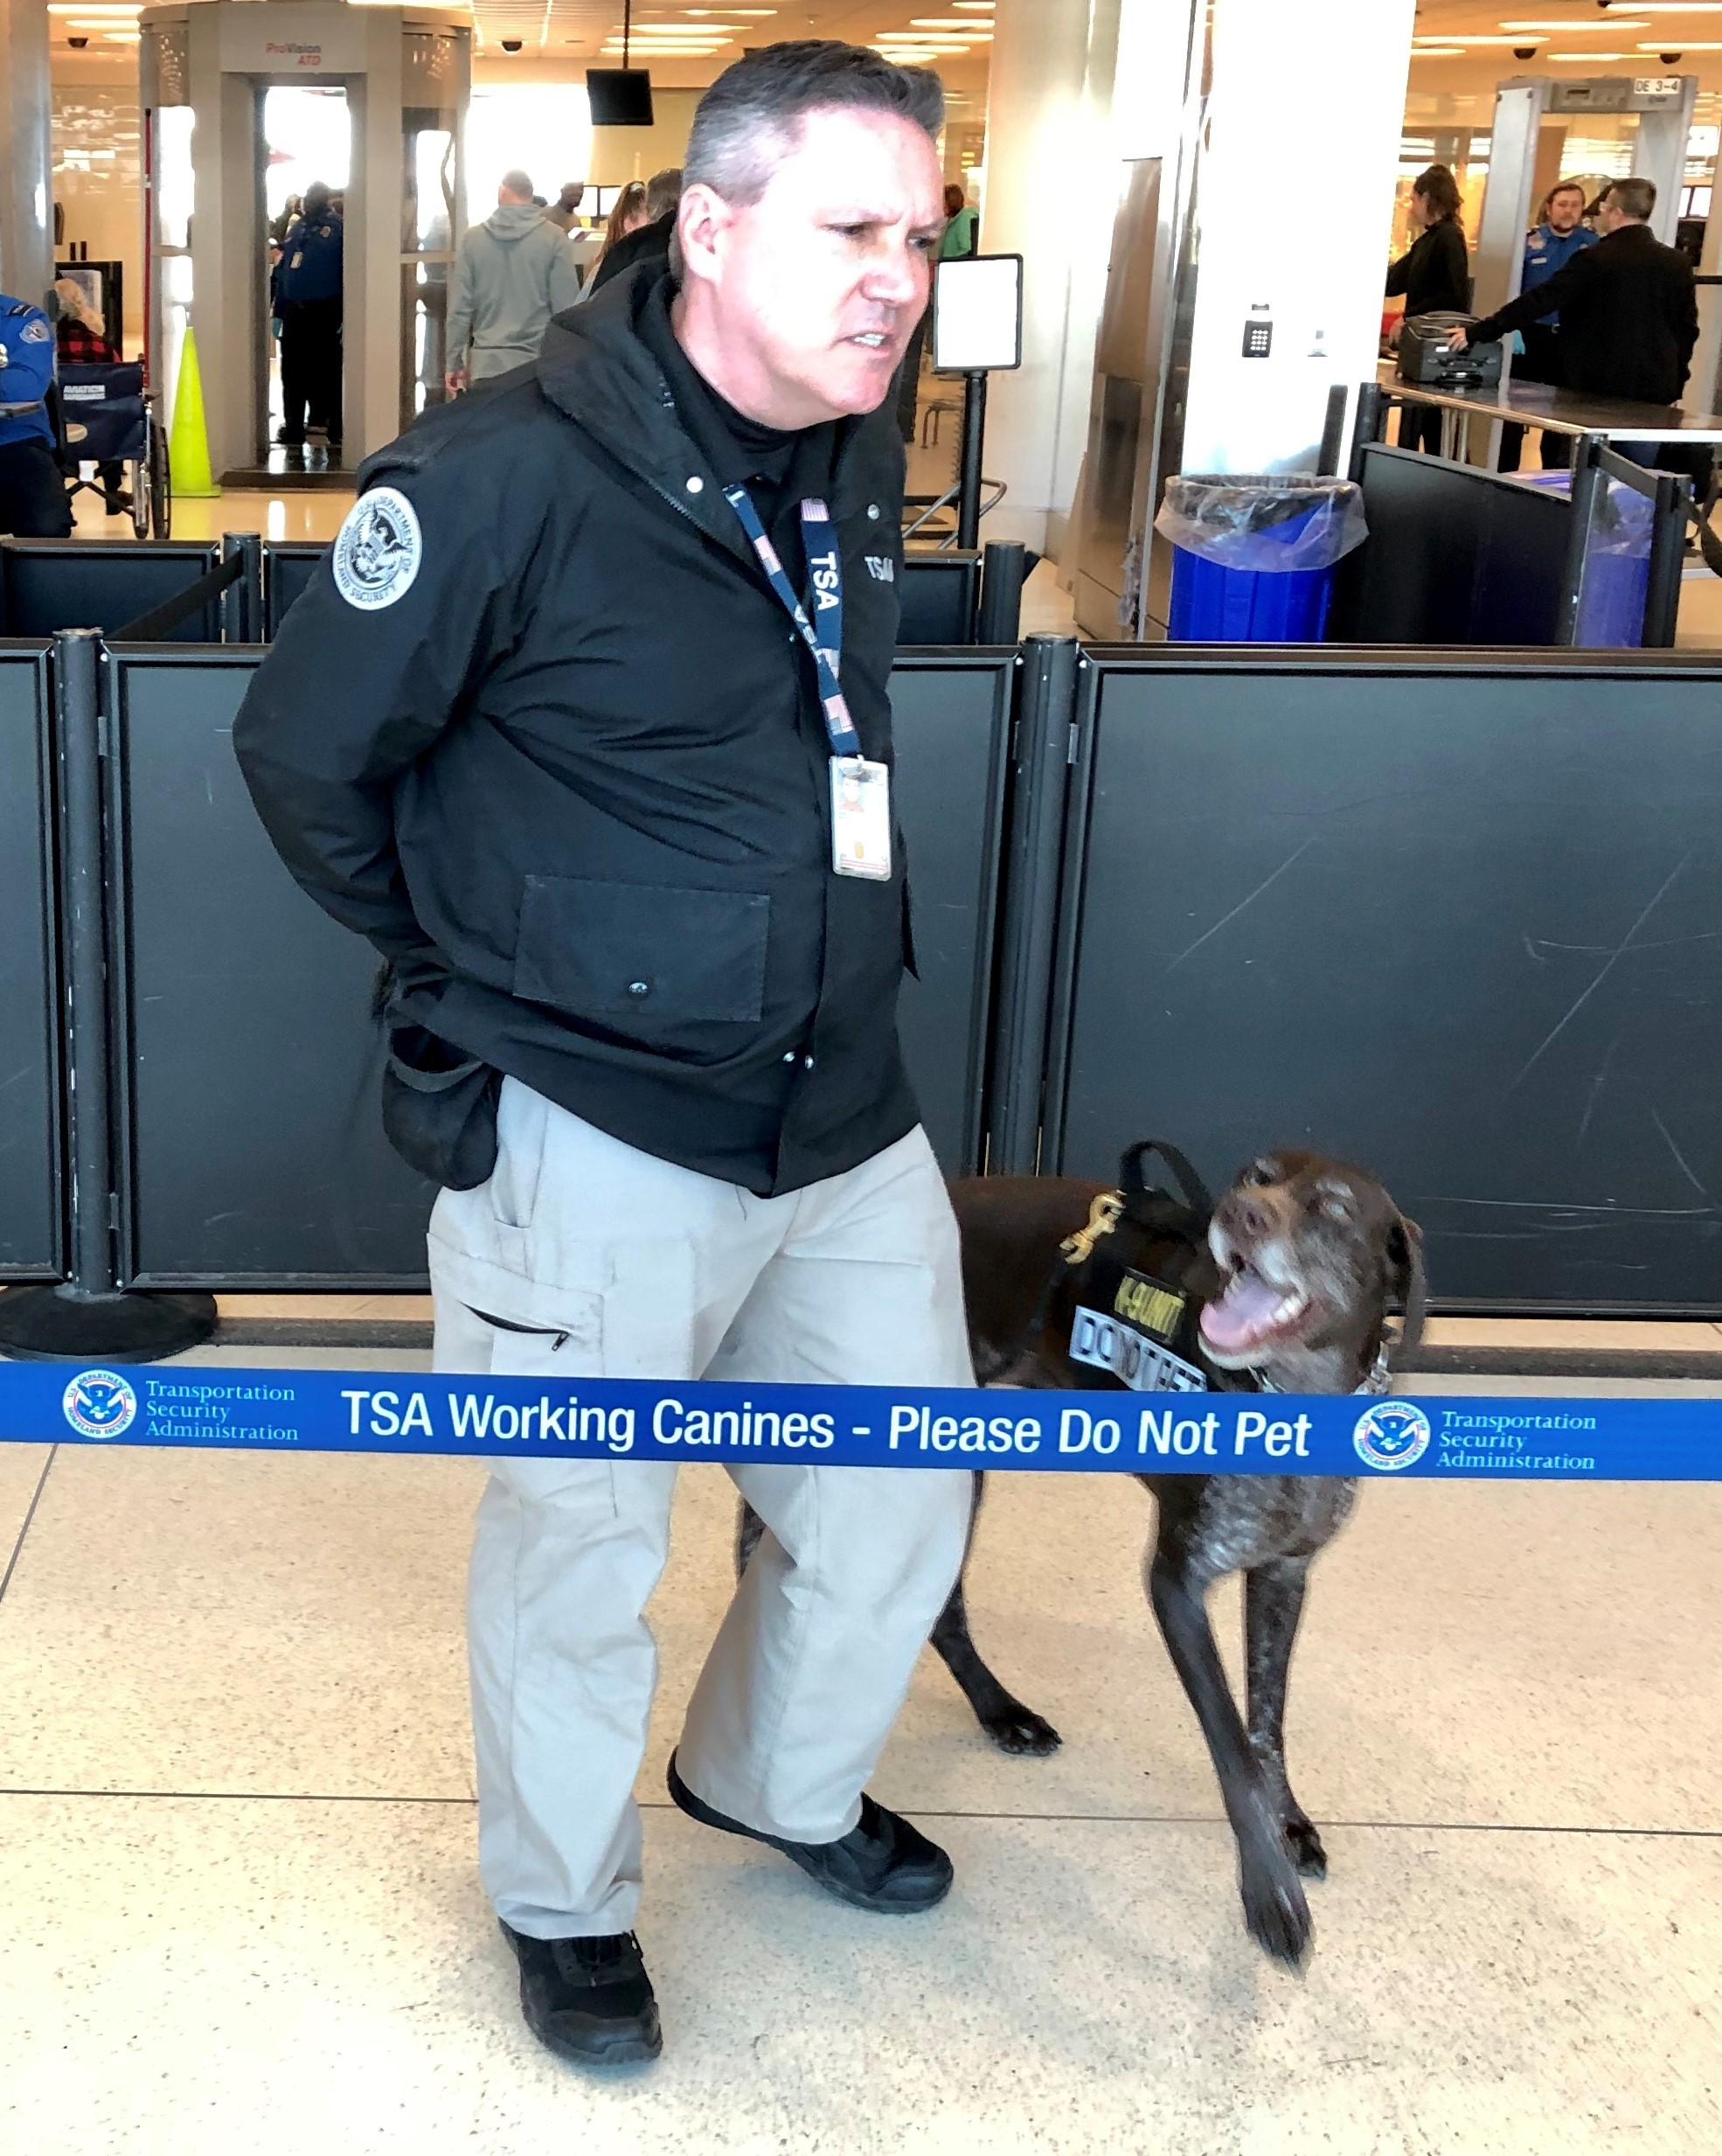 TSA Canine Handler Todd Fox works in a security checkpoint line at Philadelphia International Airport with Don, a German Short-haired Pointer. (TSA photo)